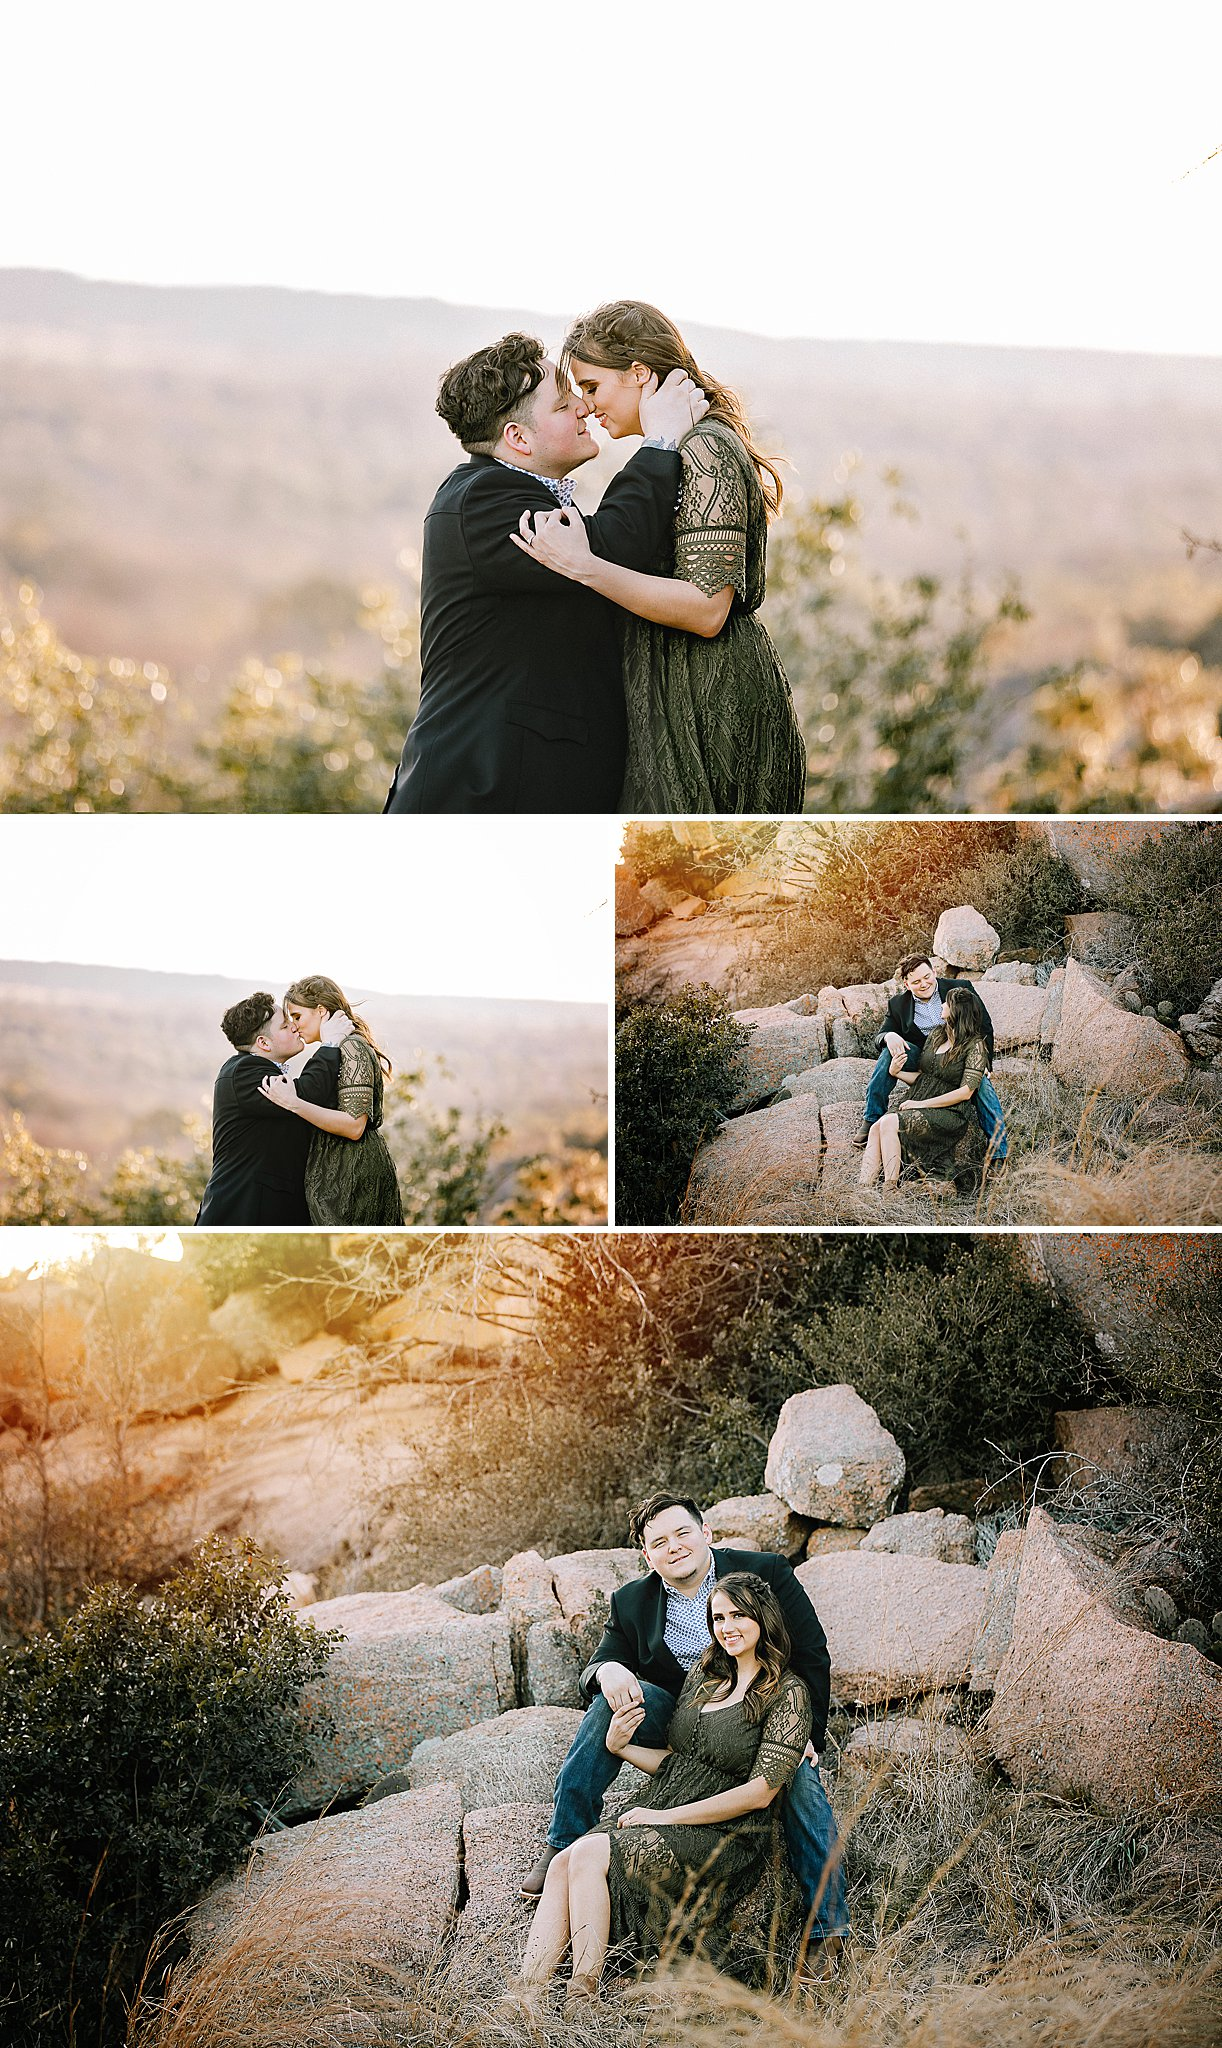 Carly-Barton-Photography-Fredericksburg-Texas-Engagement-Session-Enchanted-Rock-Photos_0019.jpg